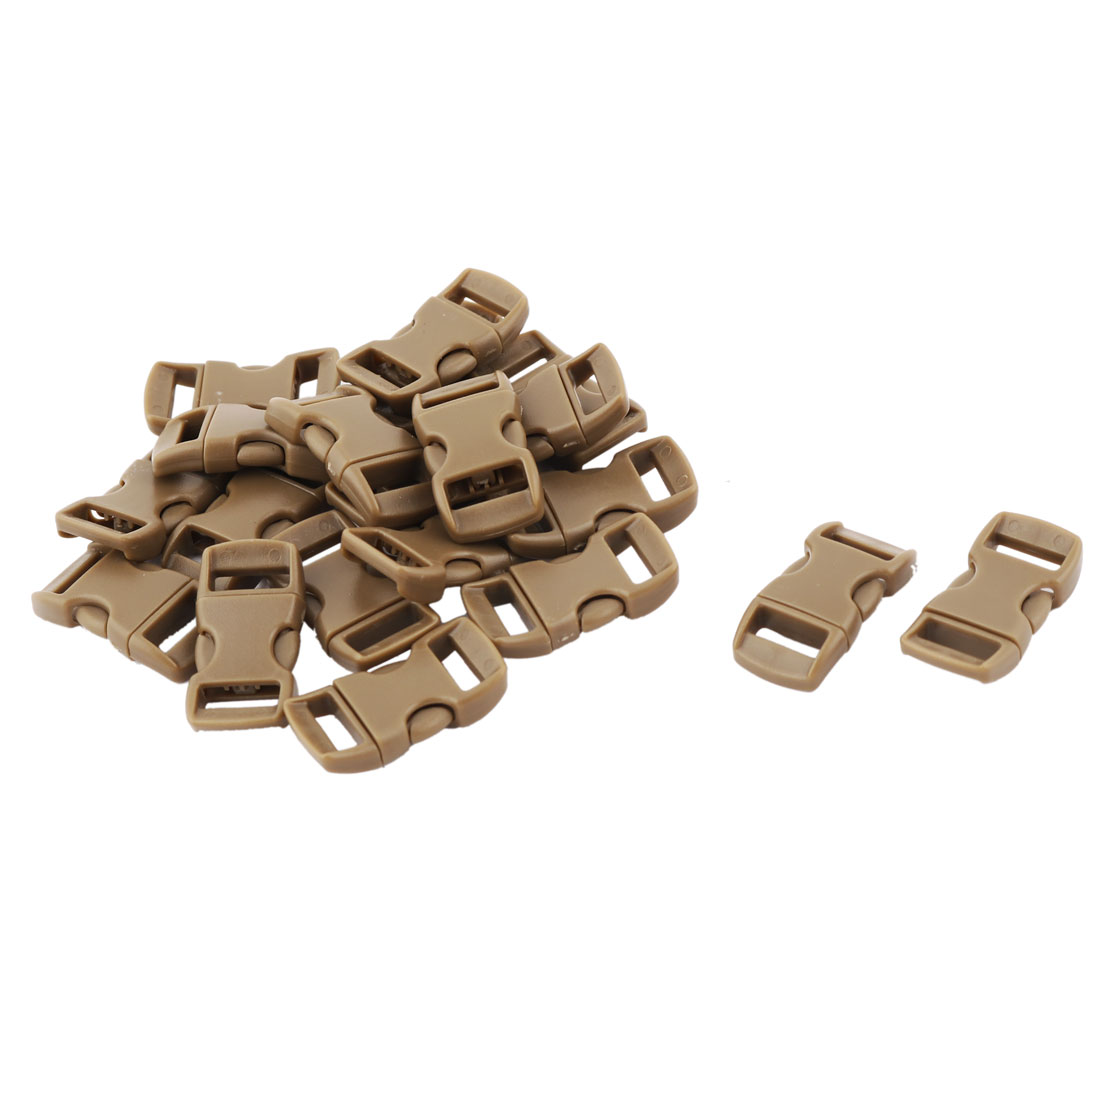 Backpack Bag Plastic Strap Connecting Quick Release Buckle Coffee Color 20 Pcs